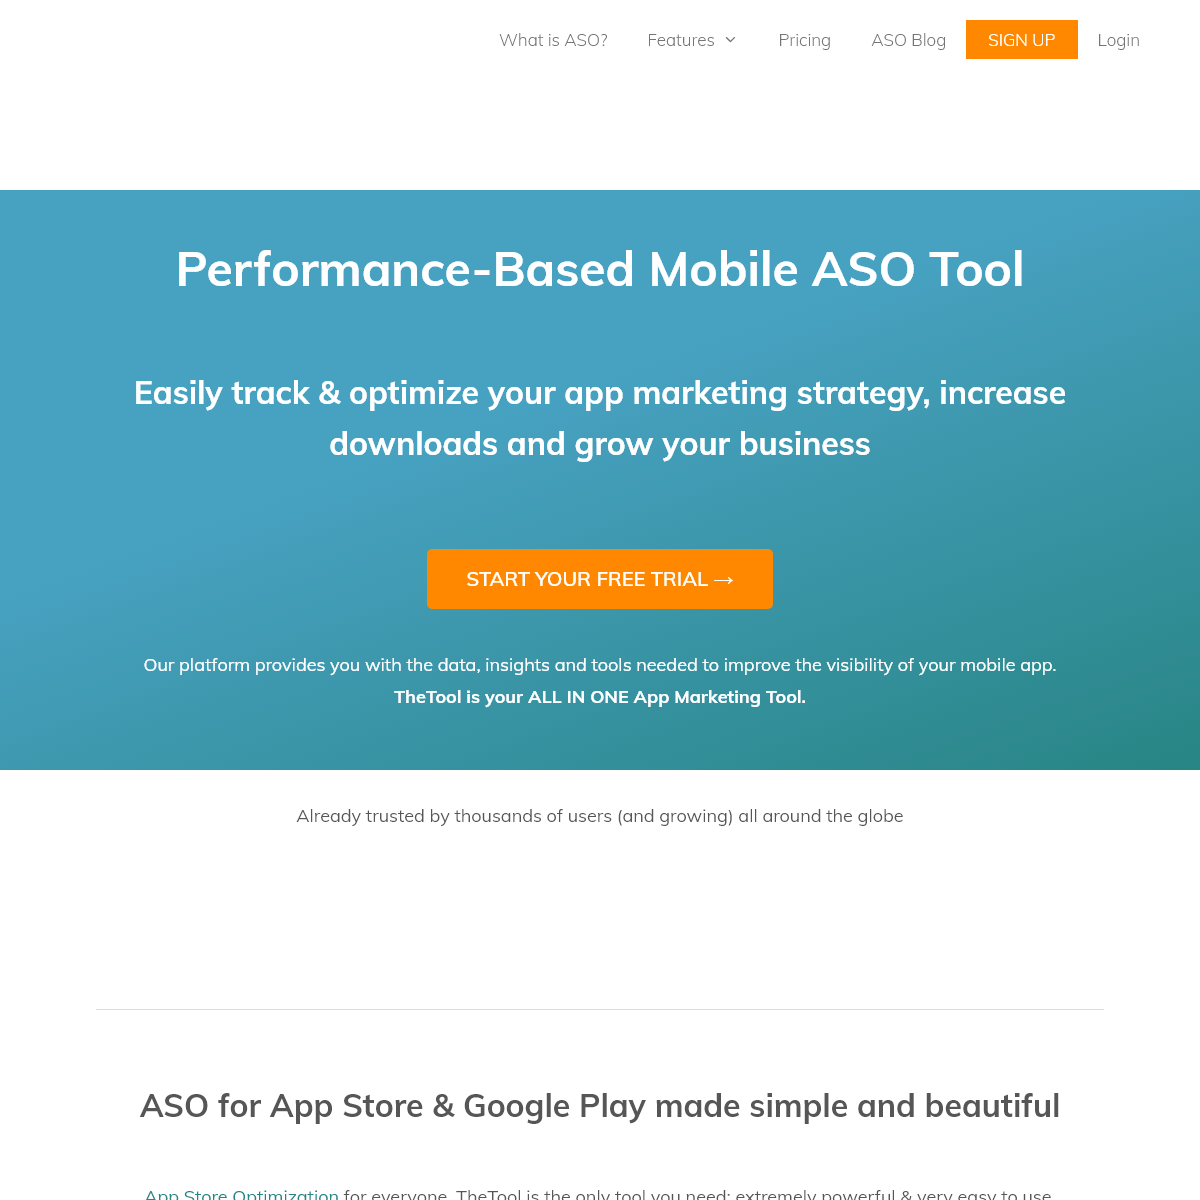 TheTool #1 ASO Tool 🥇 App Store Optimization for iOS & Android